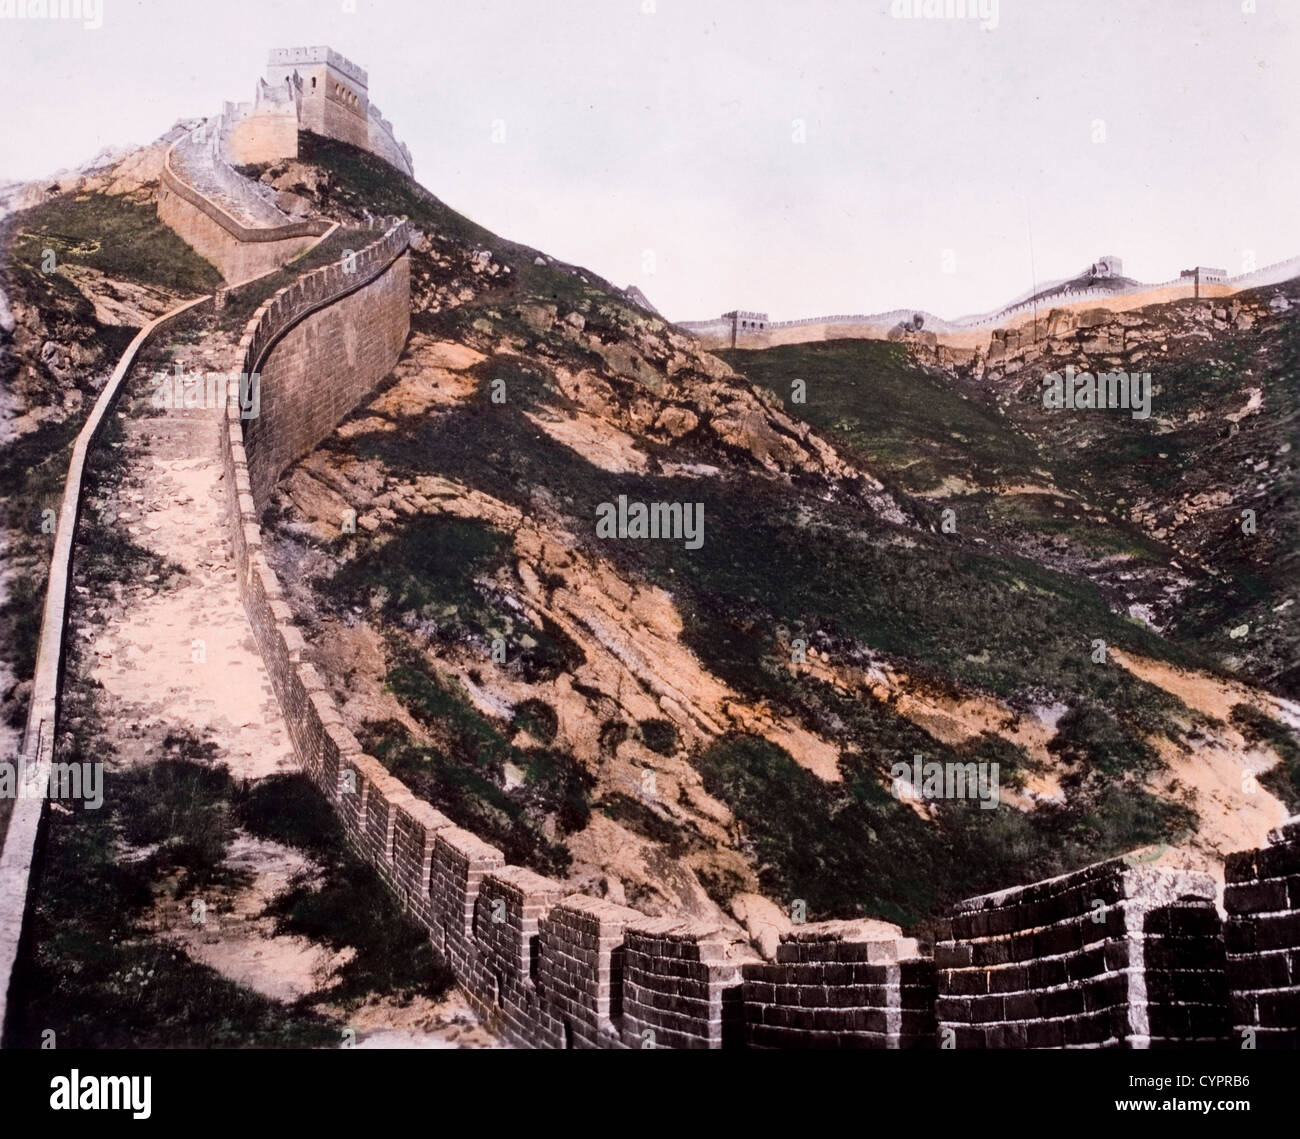 Great Wall of China, Hand-Colored Photograph, 1930 - Stock Image